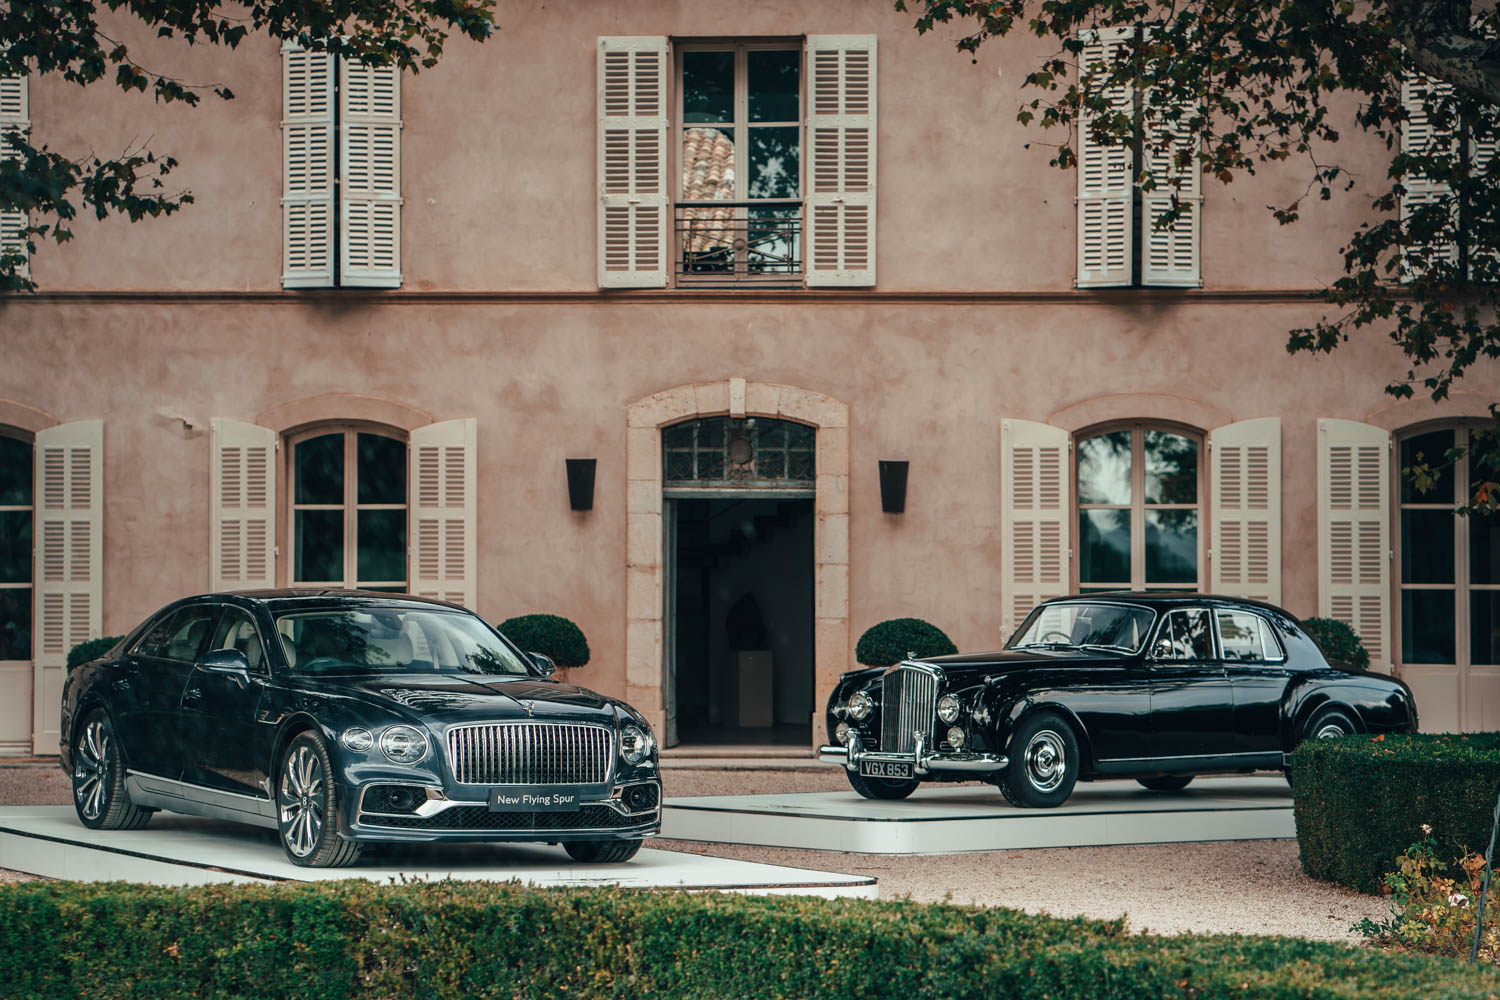 61 years of the Bentley Flying Spur: Then and now